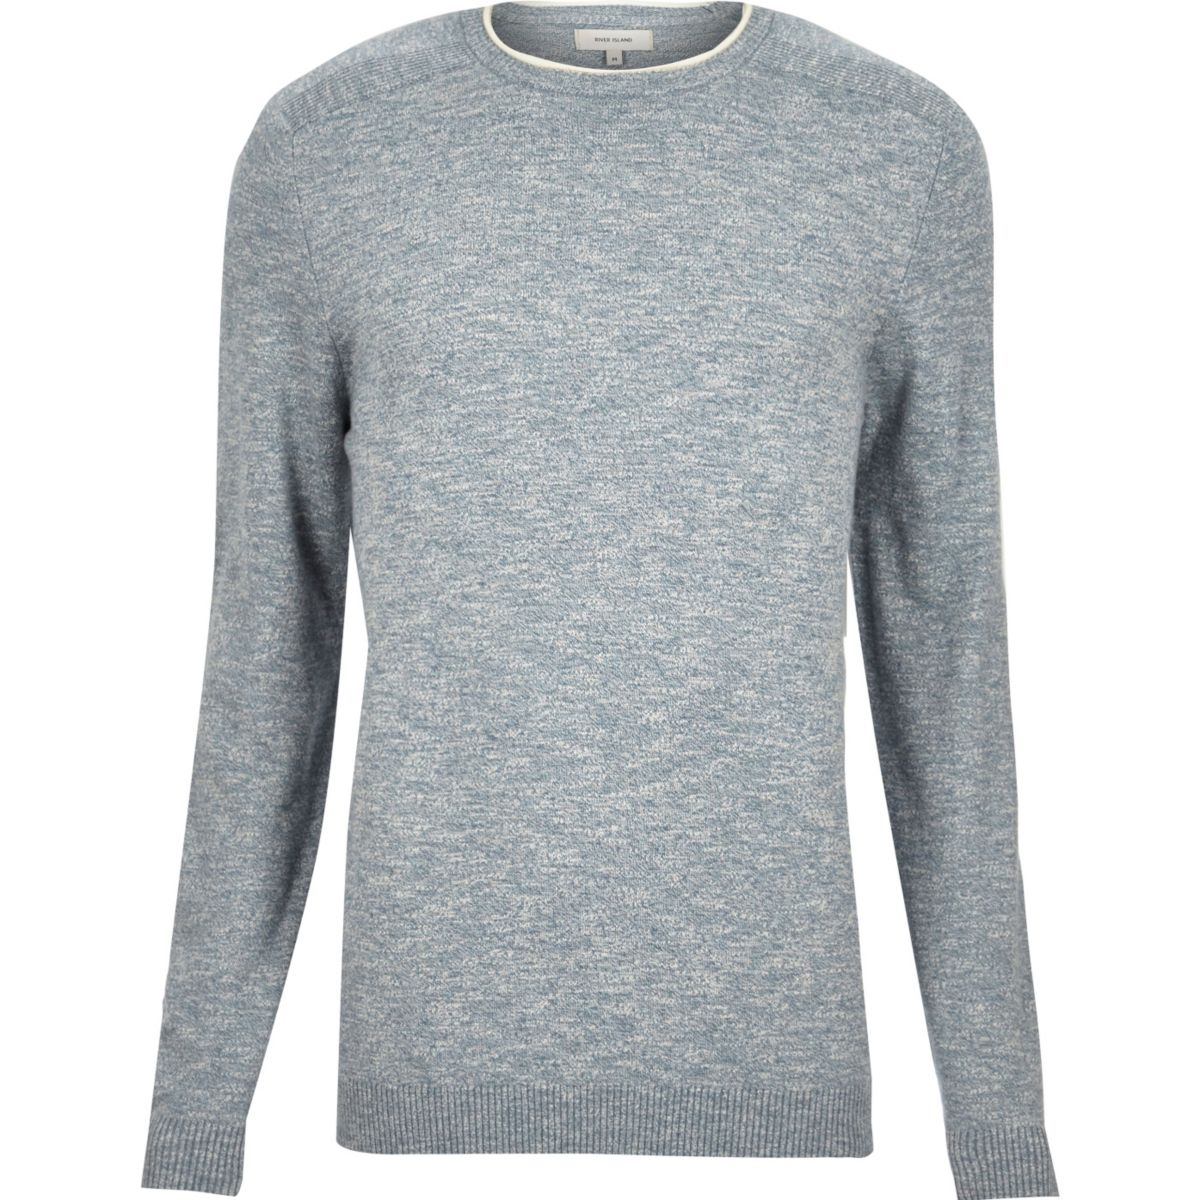 Light blue crew neck jumper